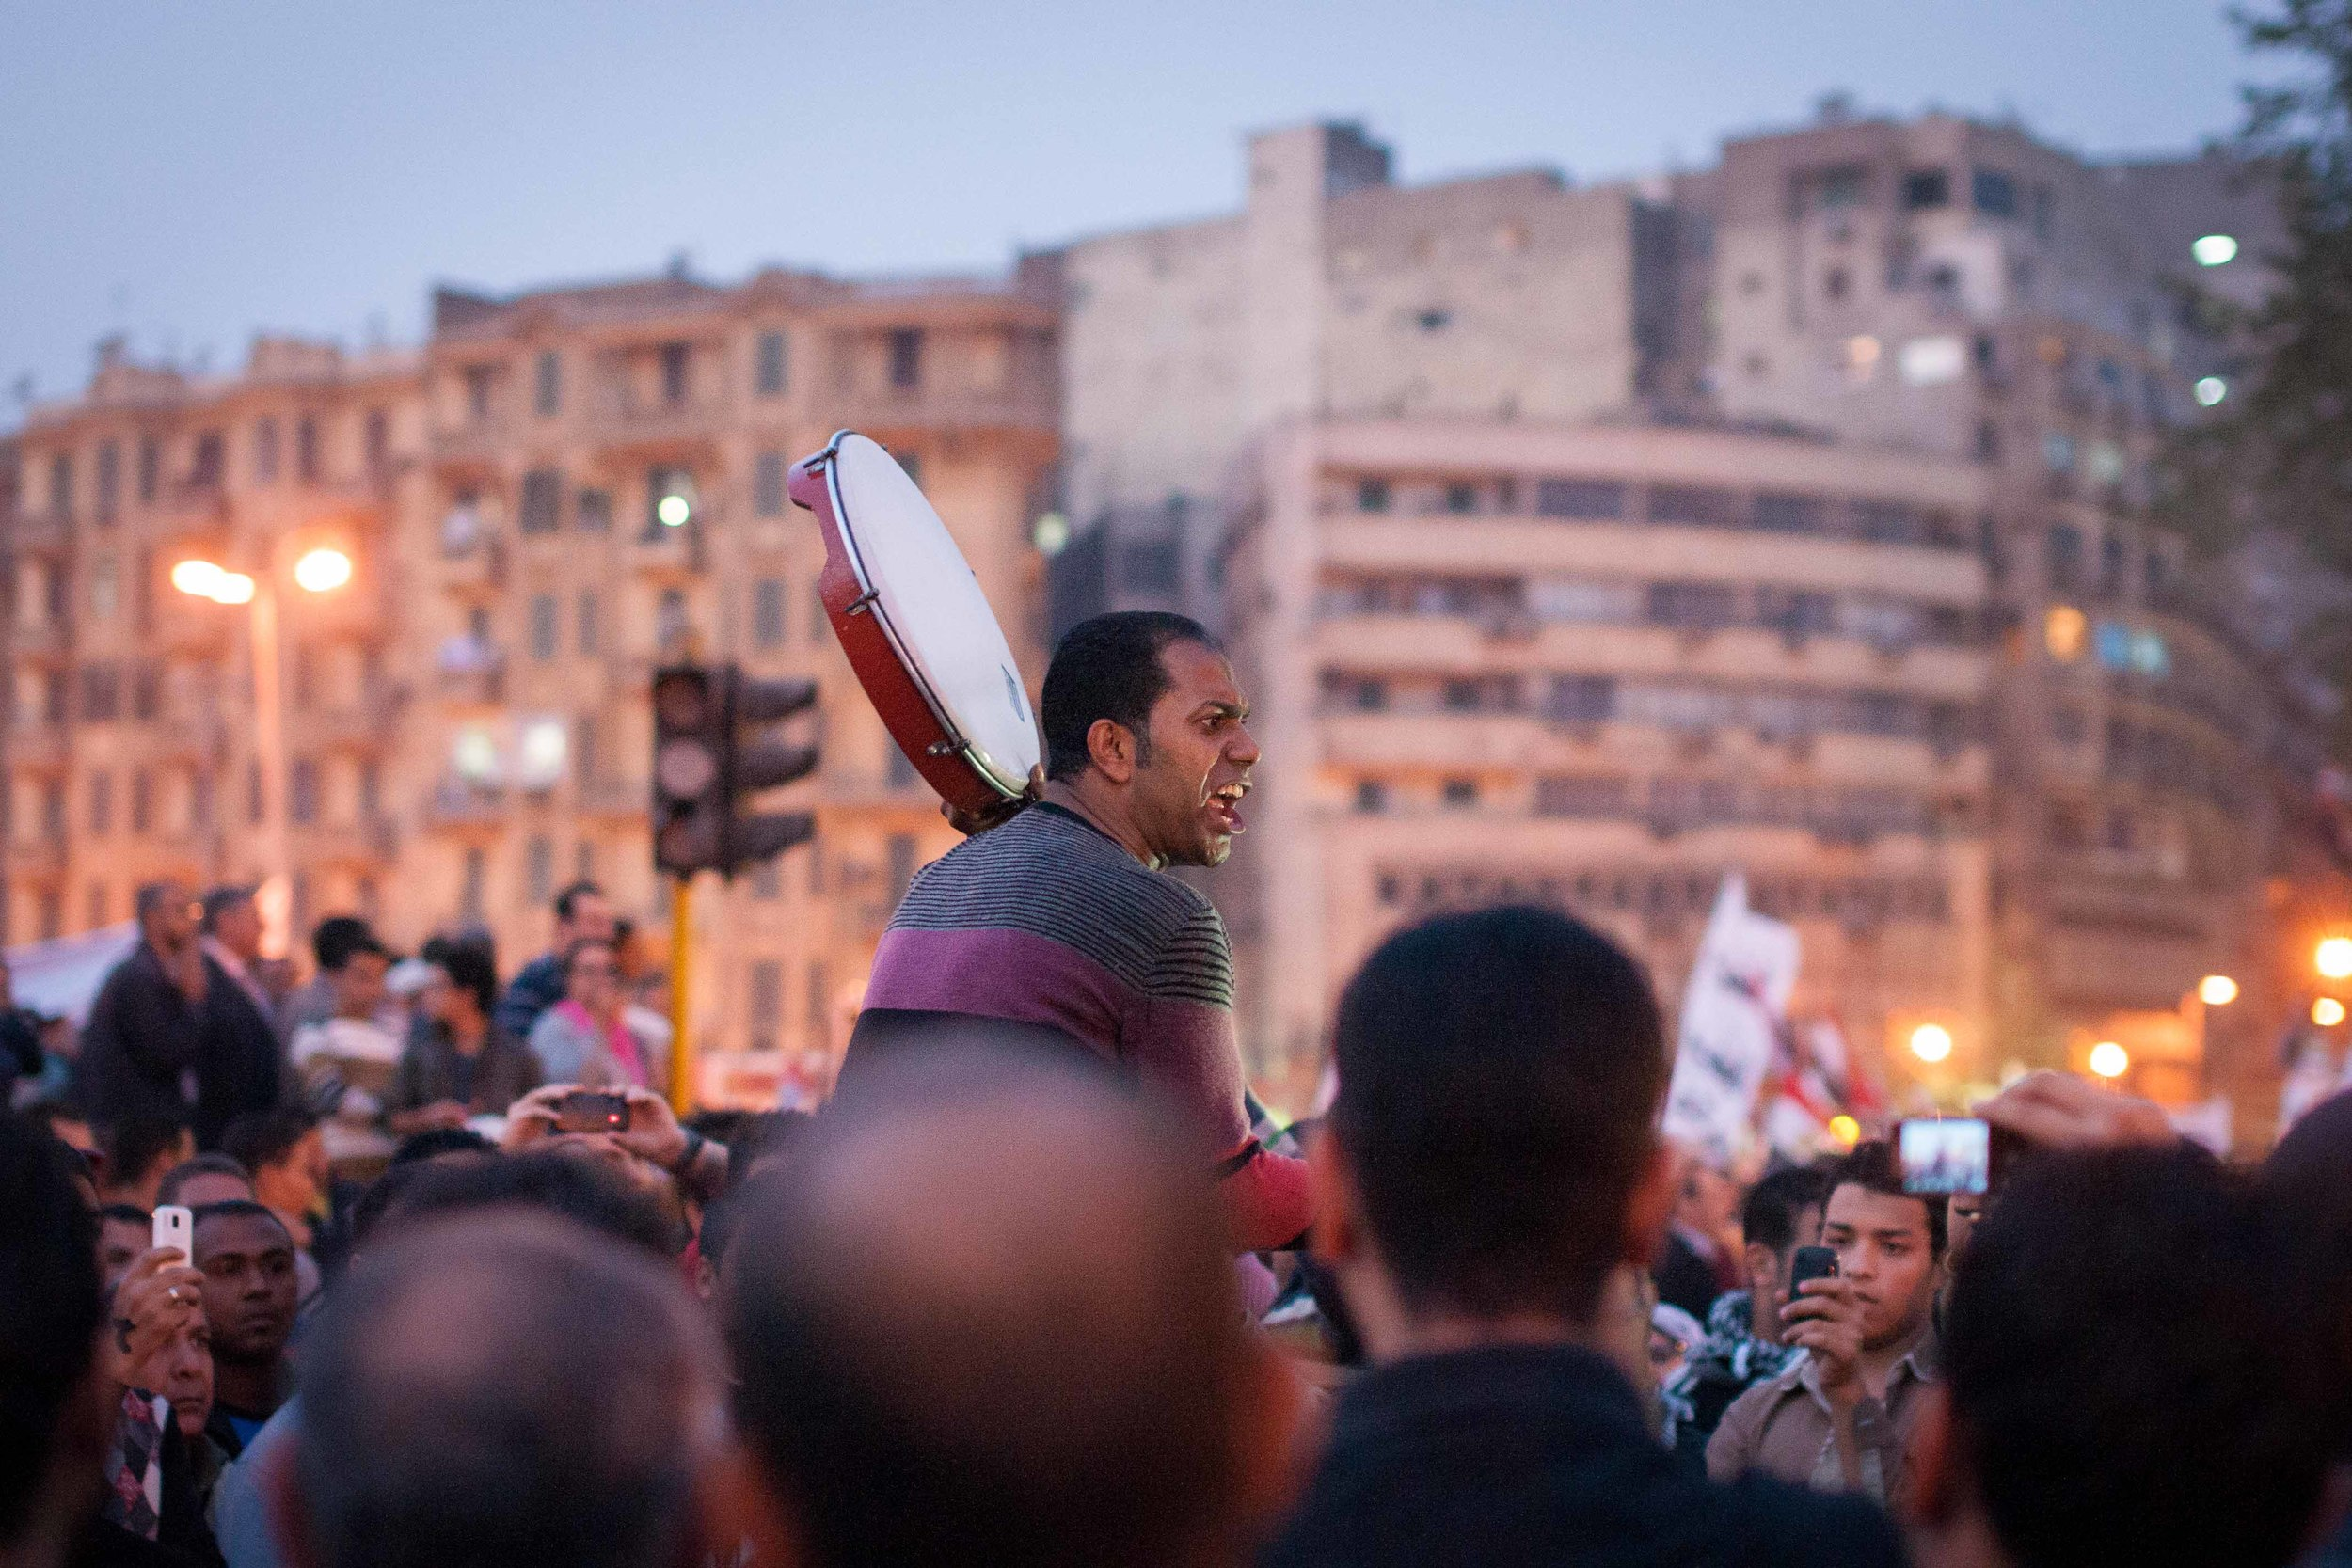 A member of the April 6th Movement (one of the early groups which helped start the Revolution) leads a chant in memory of a member who had been comatose since the beginning of the November 2012 clashes. He passed away three days ago.